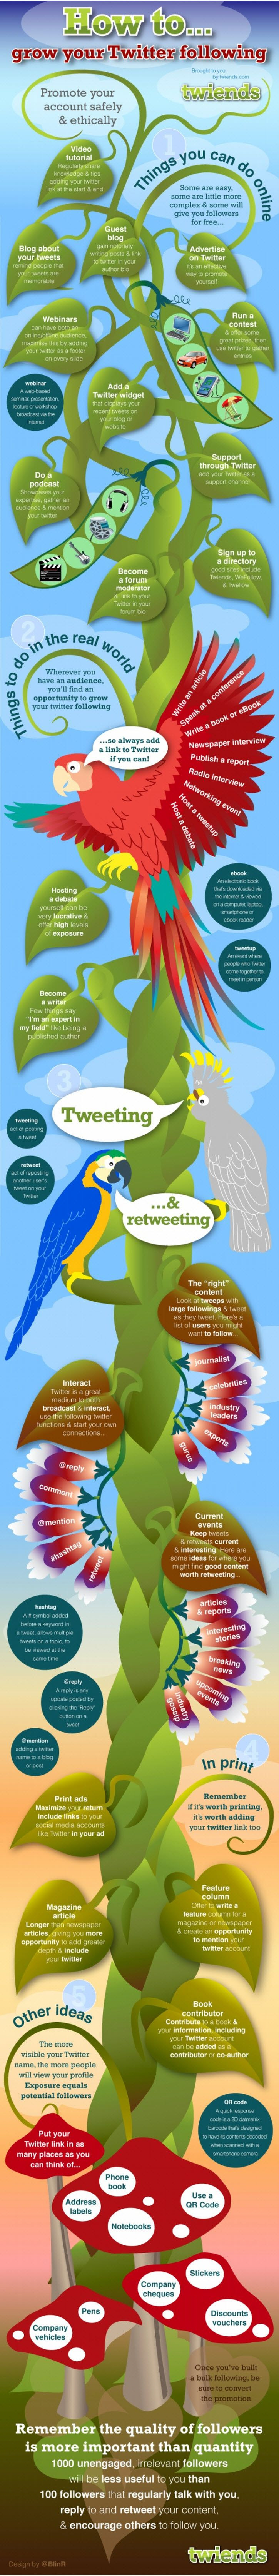 40 Ways to Increase Your Twitt